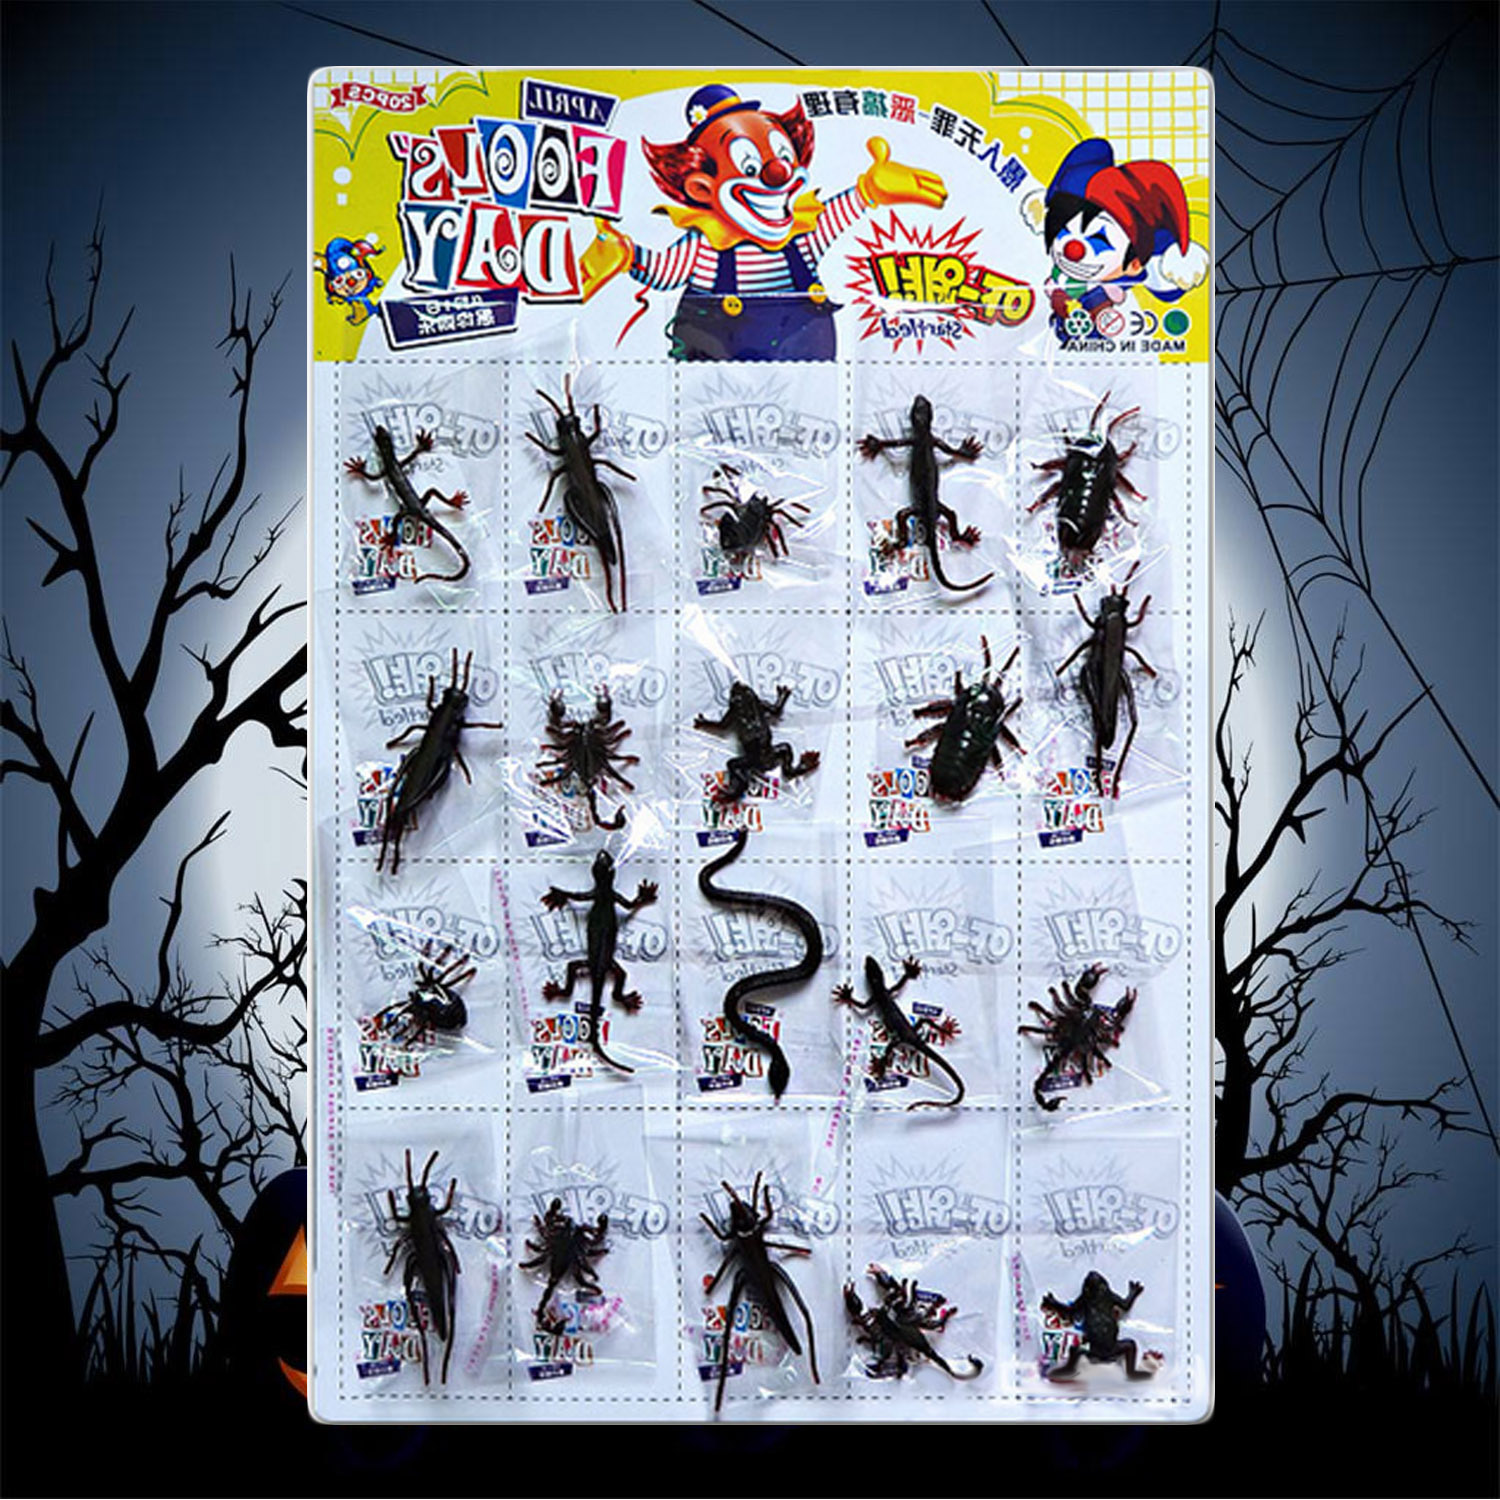 Besegad 20PCS Funny Realistic Plastic Insect Prank Toy For Kids Children Gift Halloween April Fool Day Party Decoration